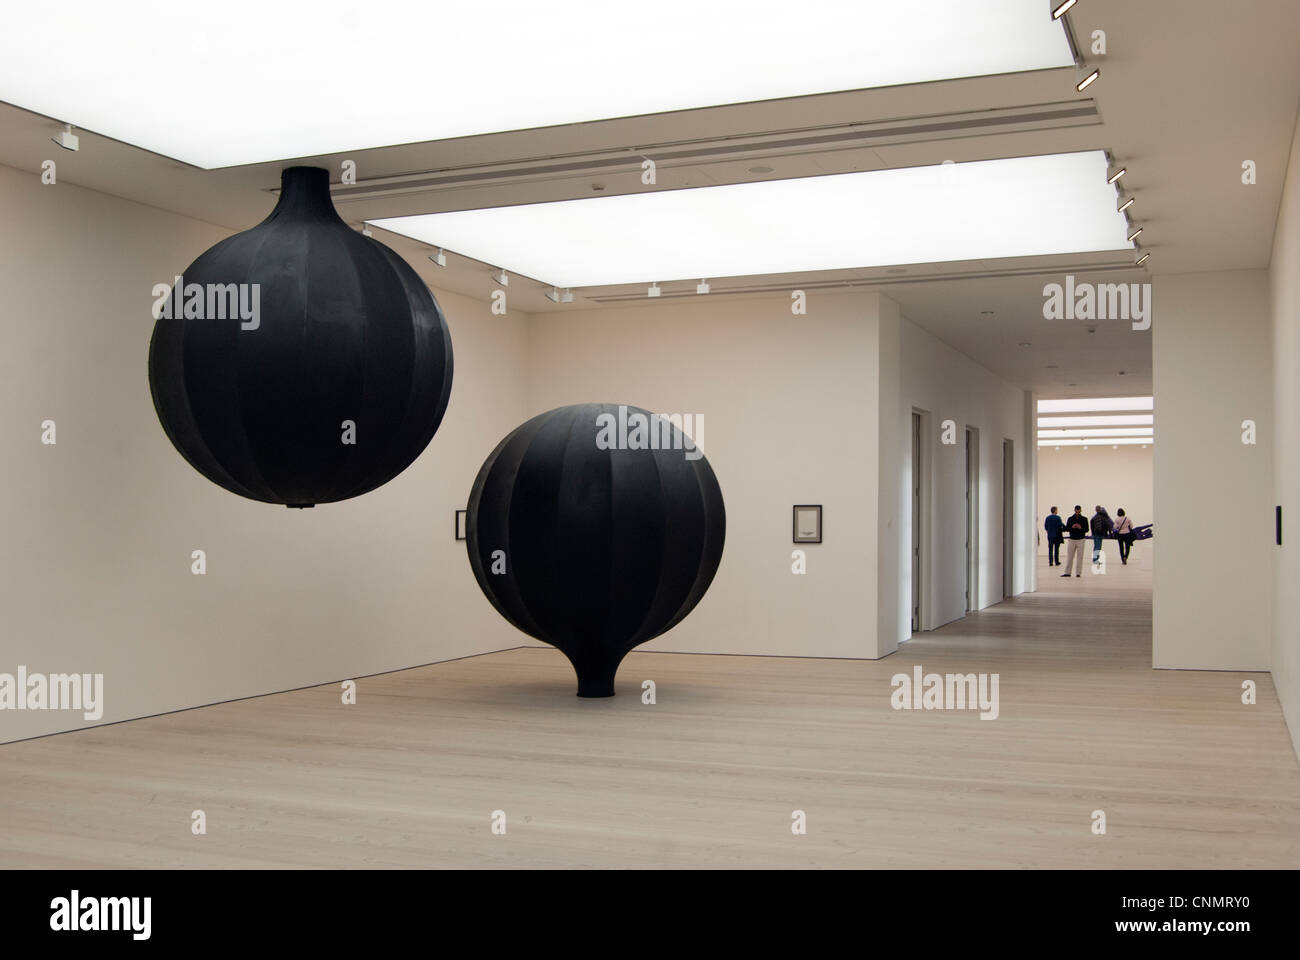 Saatchi Gallery, London - Stock Image